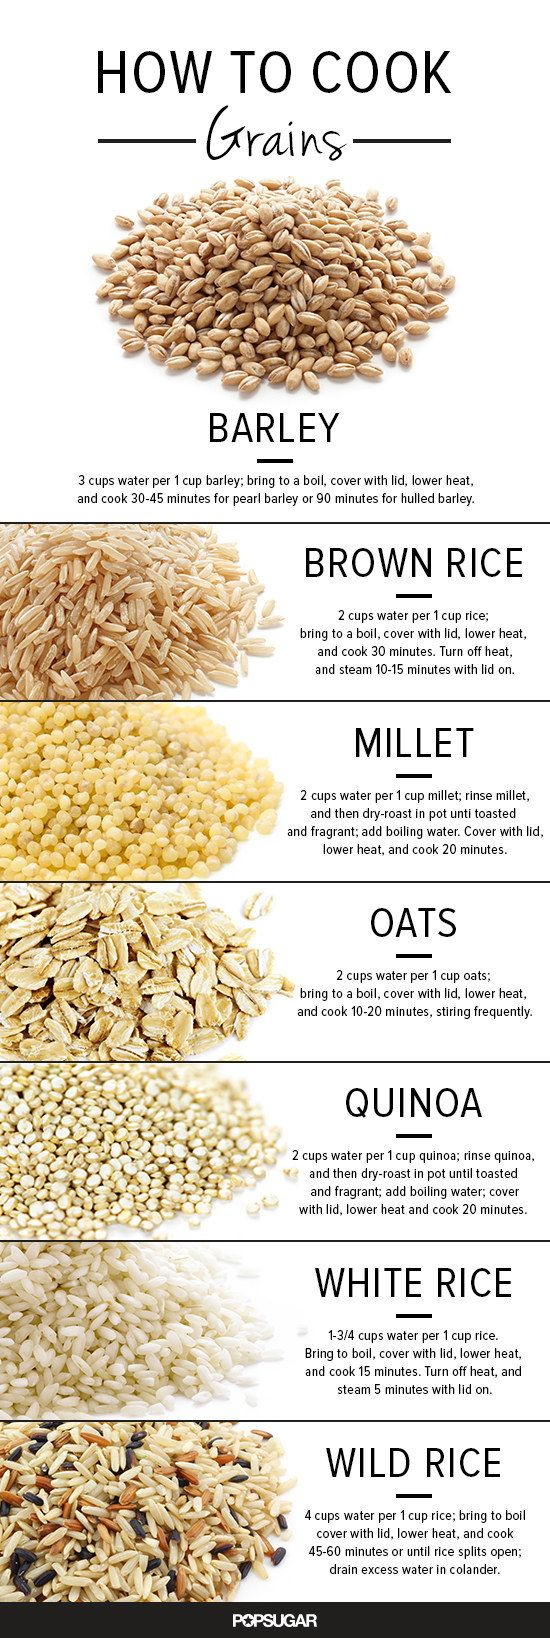 How to cook grains, for all the healthiest grains. Please also visit www.JustForYouPropheticArt.com for colorful, inspirational art and stories and like my Facebook Art Page  at www.facebook.com/Propheticartjustforyou Thank you so much! Blessings!